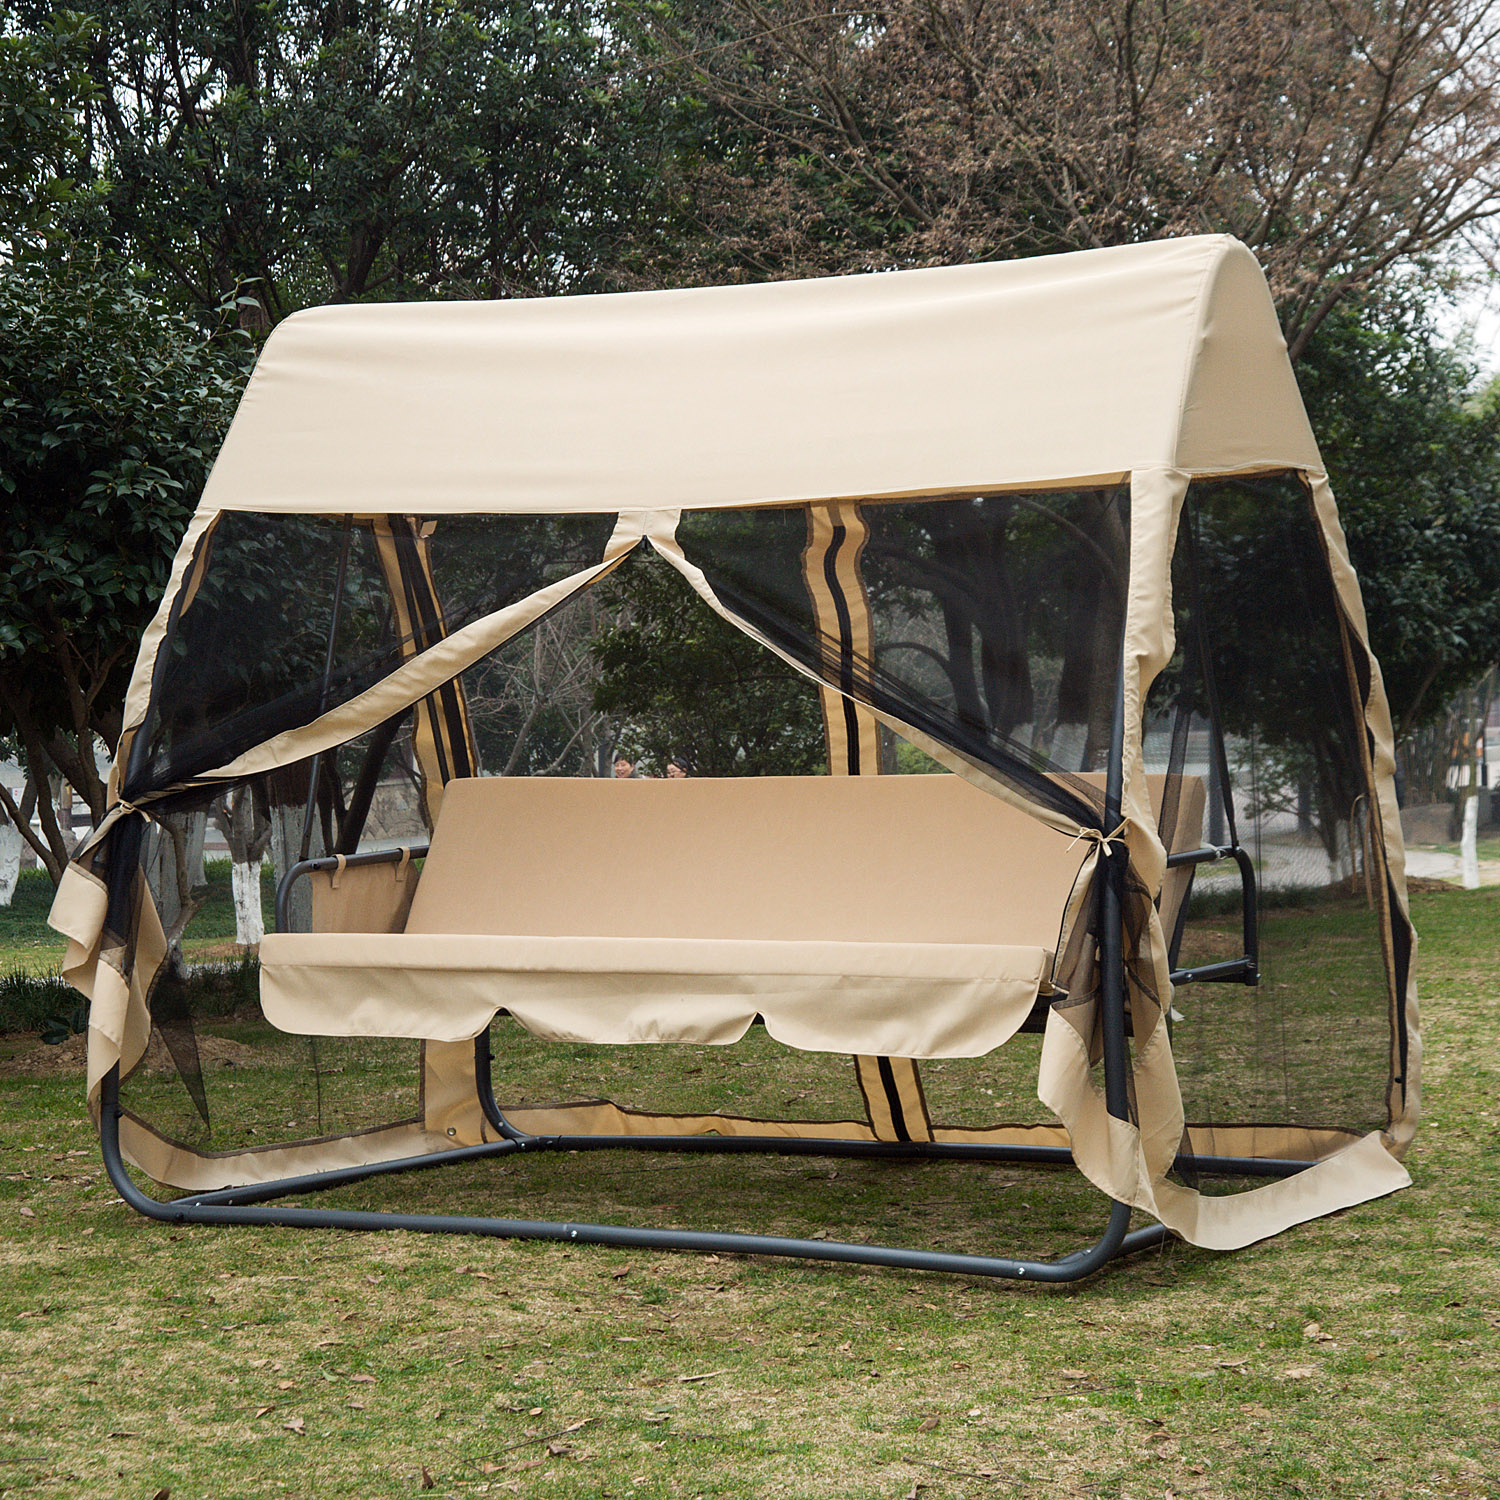 Outsunny 3 Seat Outdoor Convertible Swing Chair Bed W Mosquito